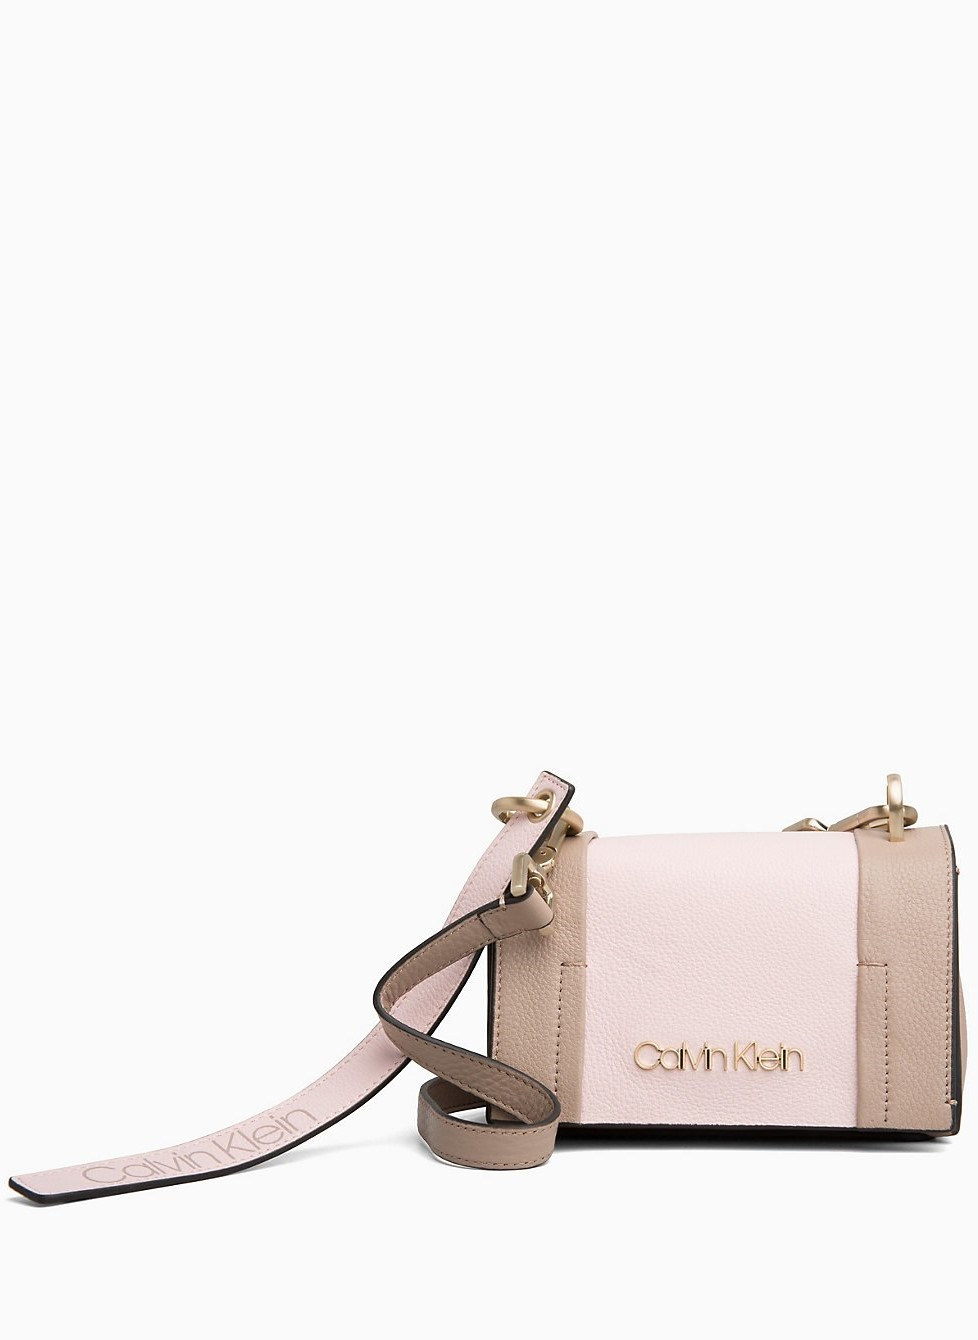 Calvin Klein kožená crossbody kabelka City Leather Small Fla